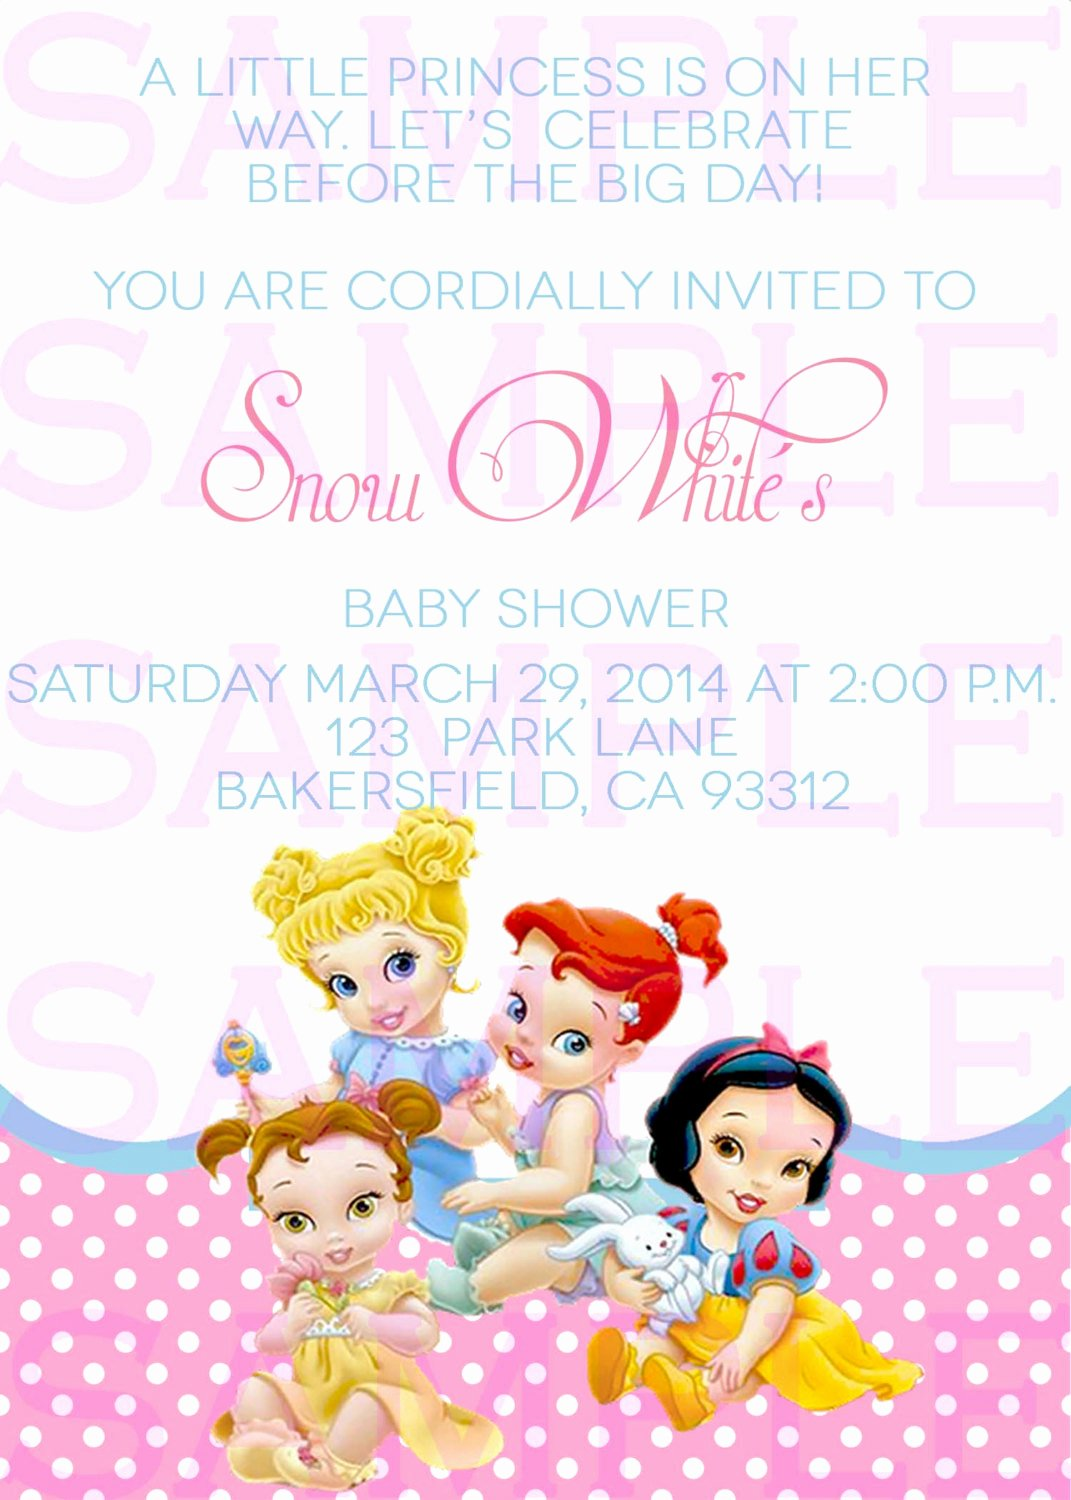 Disney Baby Shower Invitations Lovely Baby Shower Invitation Princess Disney Babies Girl